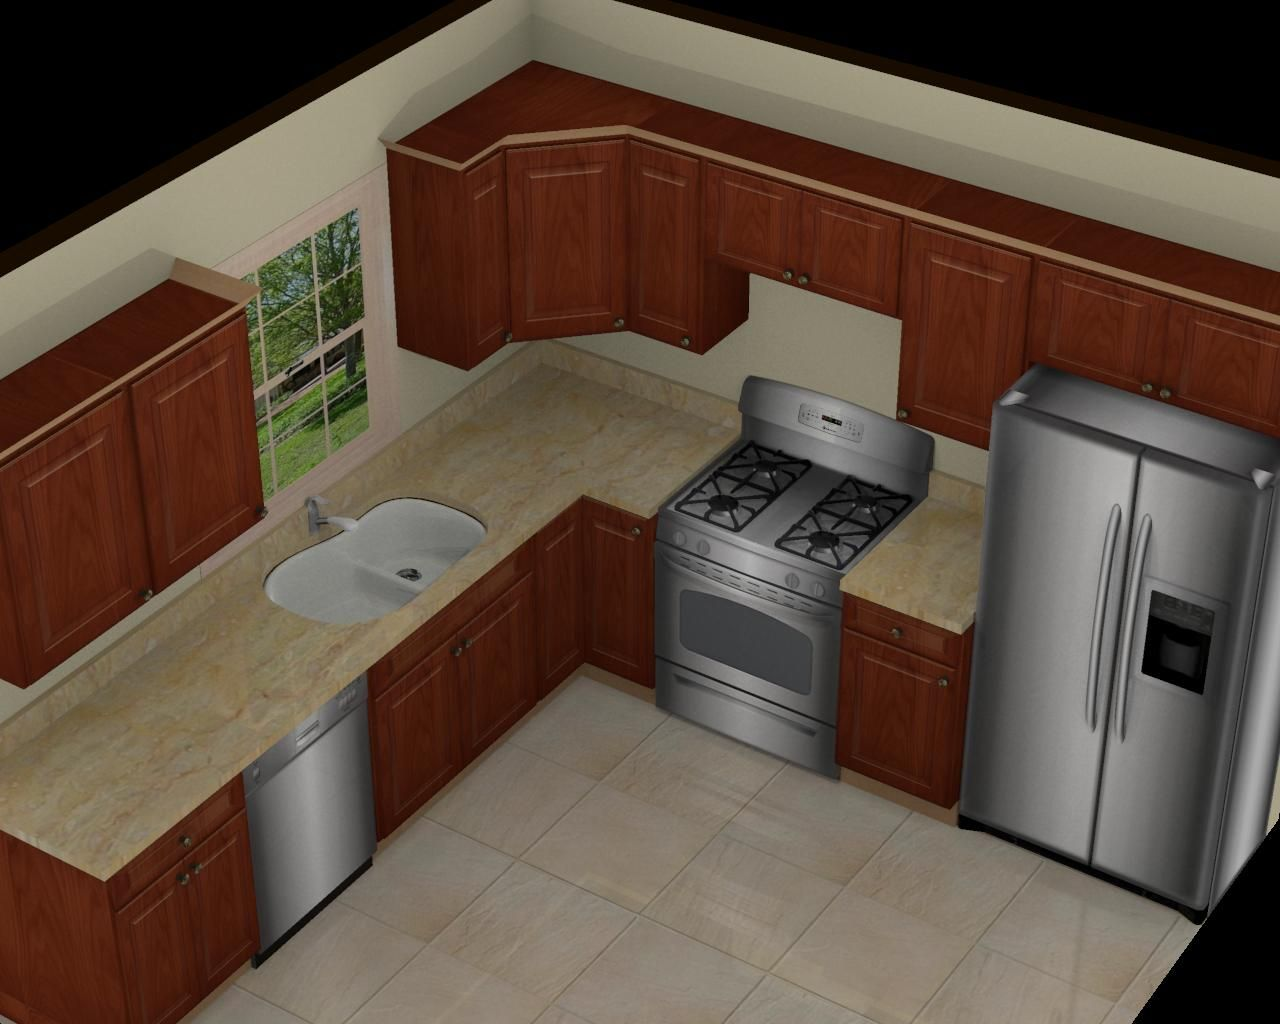 There are many ideas 10 10 kitchen design that you can do for Kitchen ideas 12 x 12